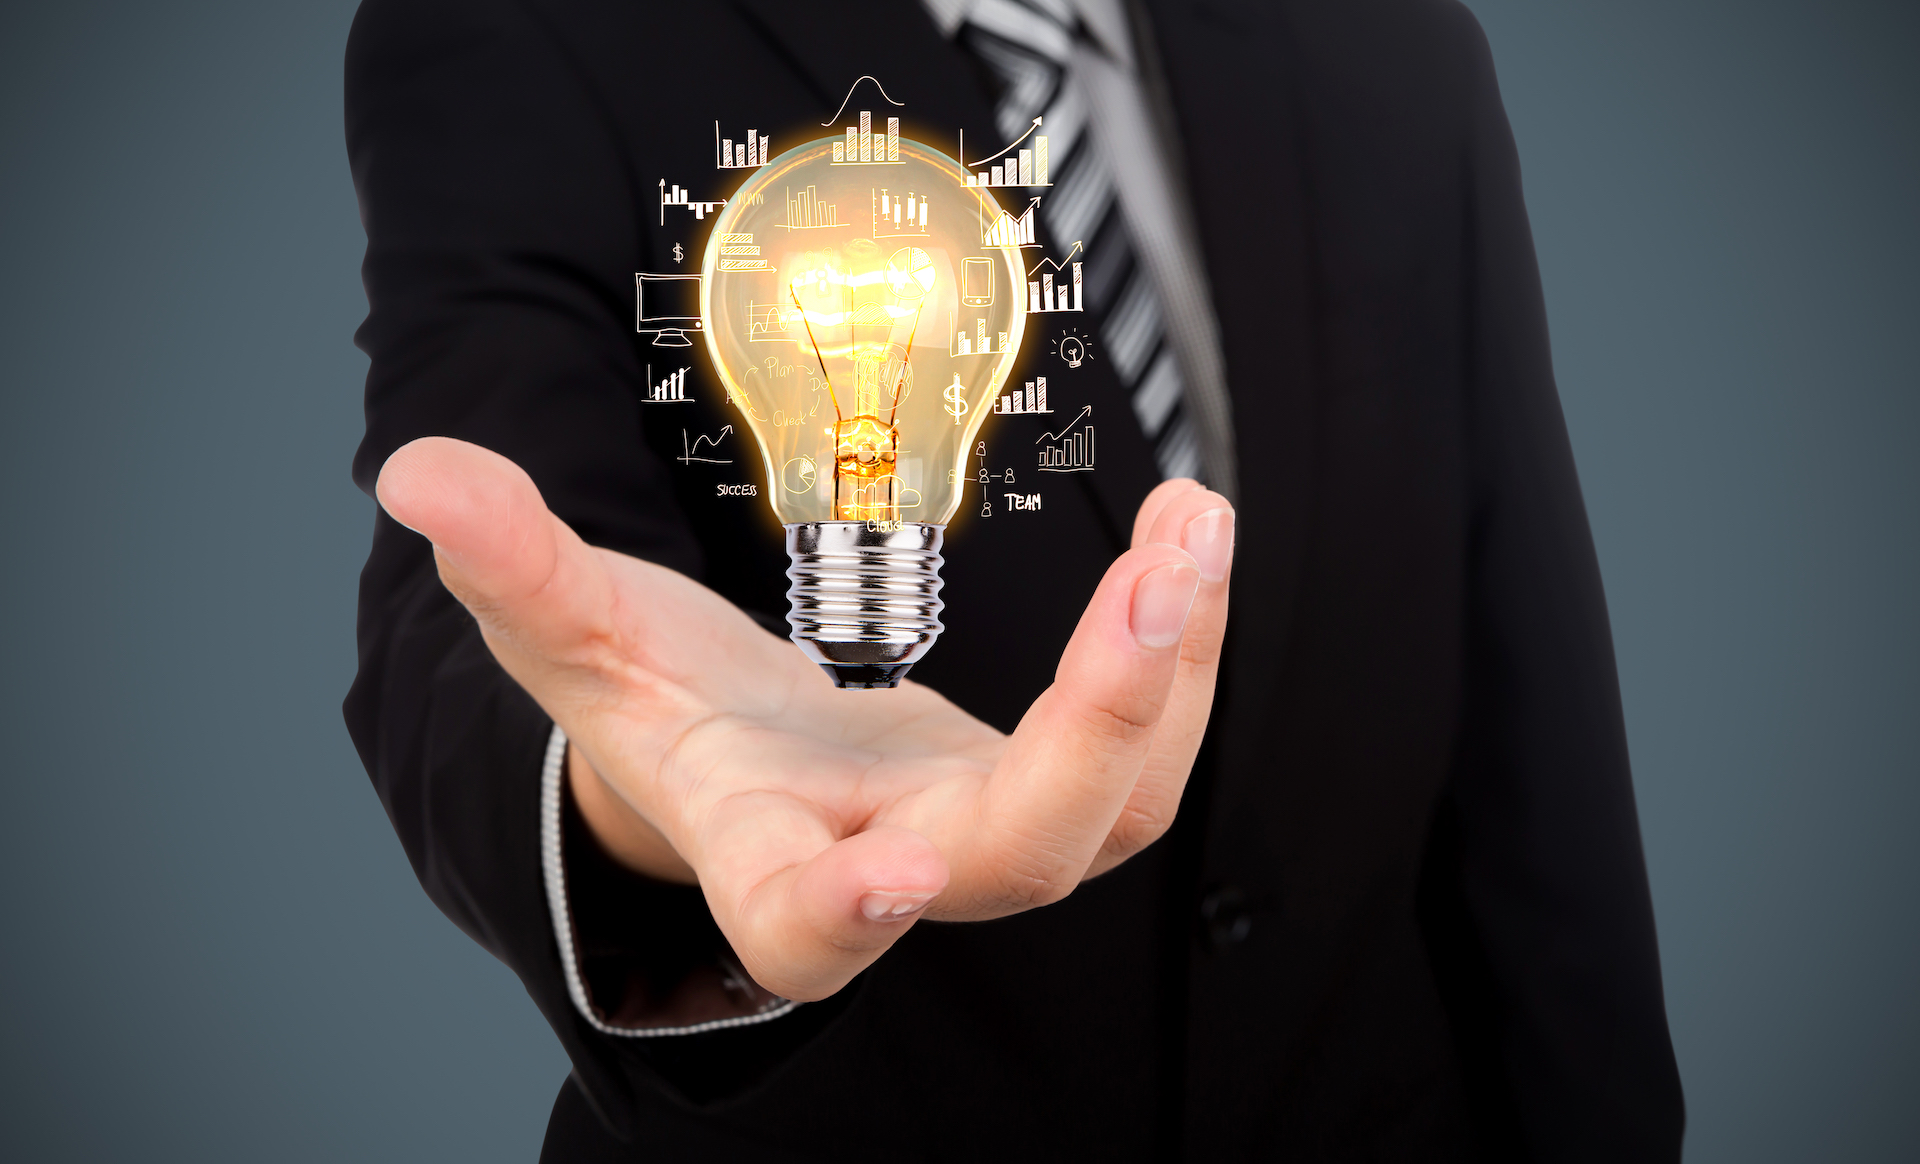 Man in black business suit holding a light bulb in his outstretched hand